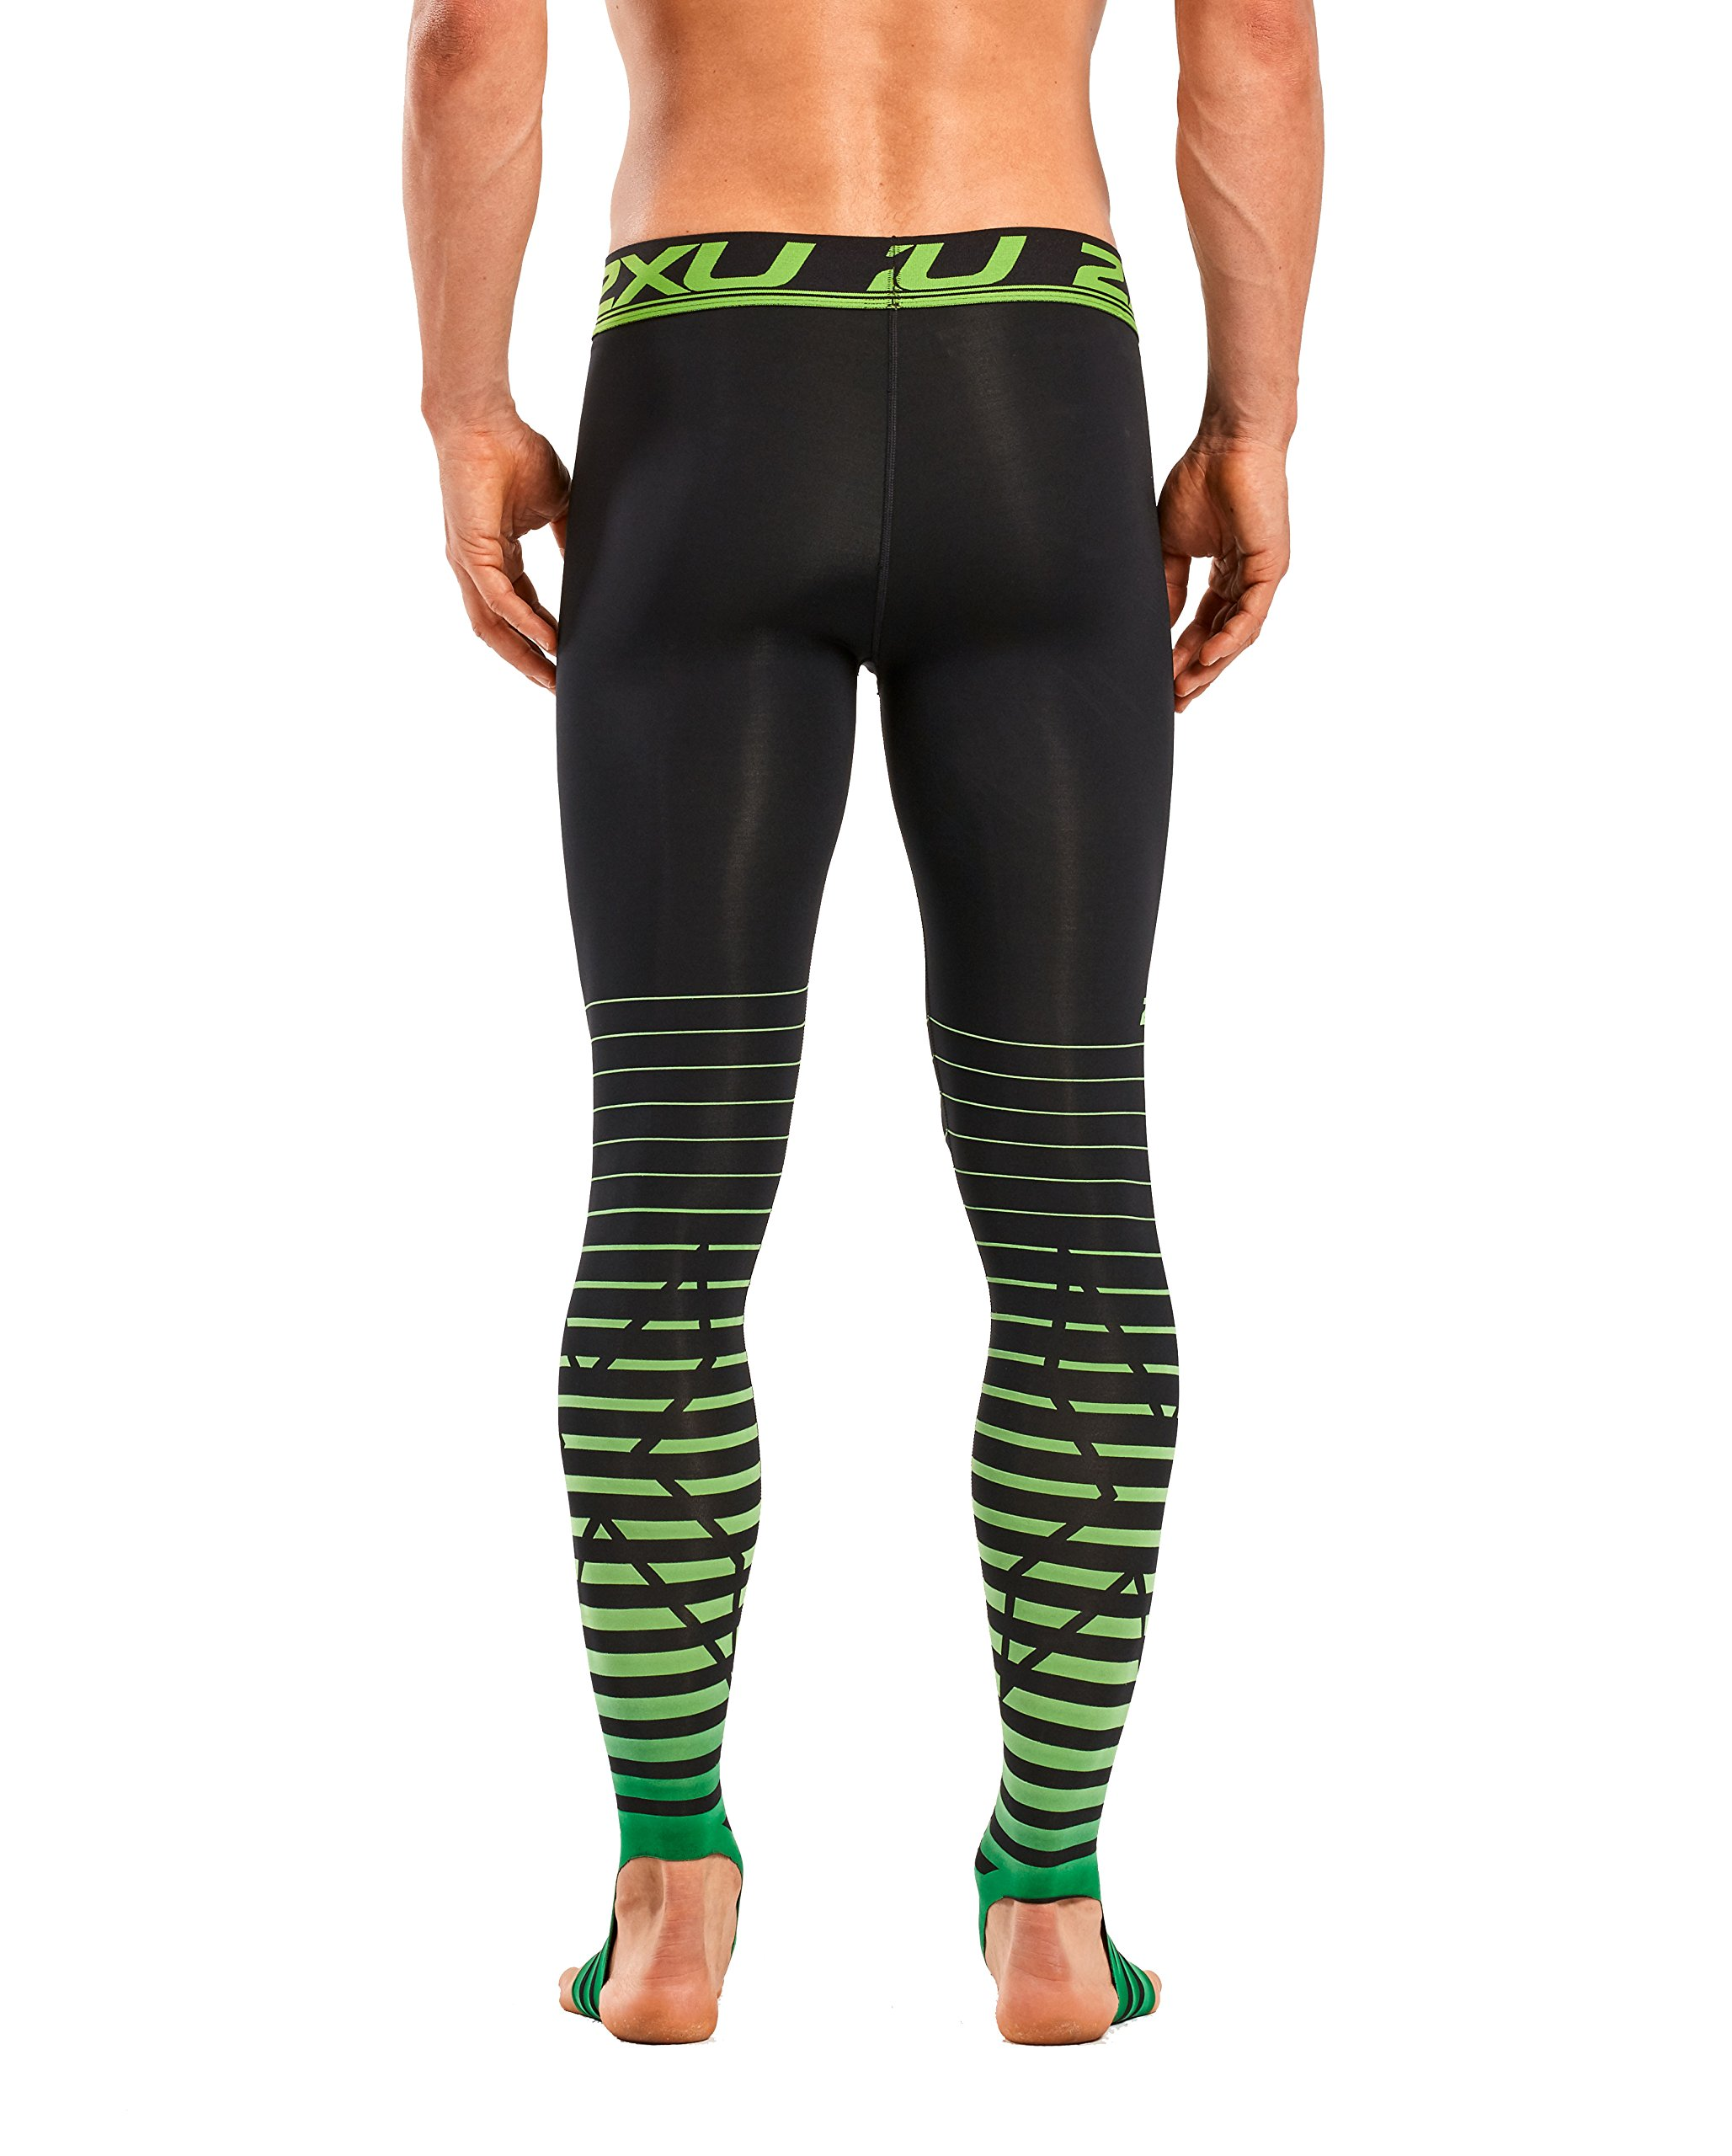 2XU Men's Elite Power Recovery Compression Tights, Black/Green, Small by 2XU (Image #3)